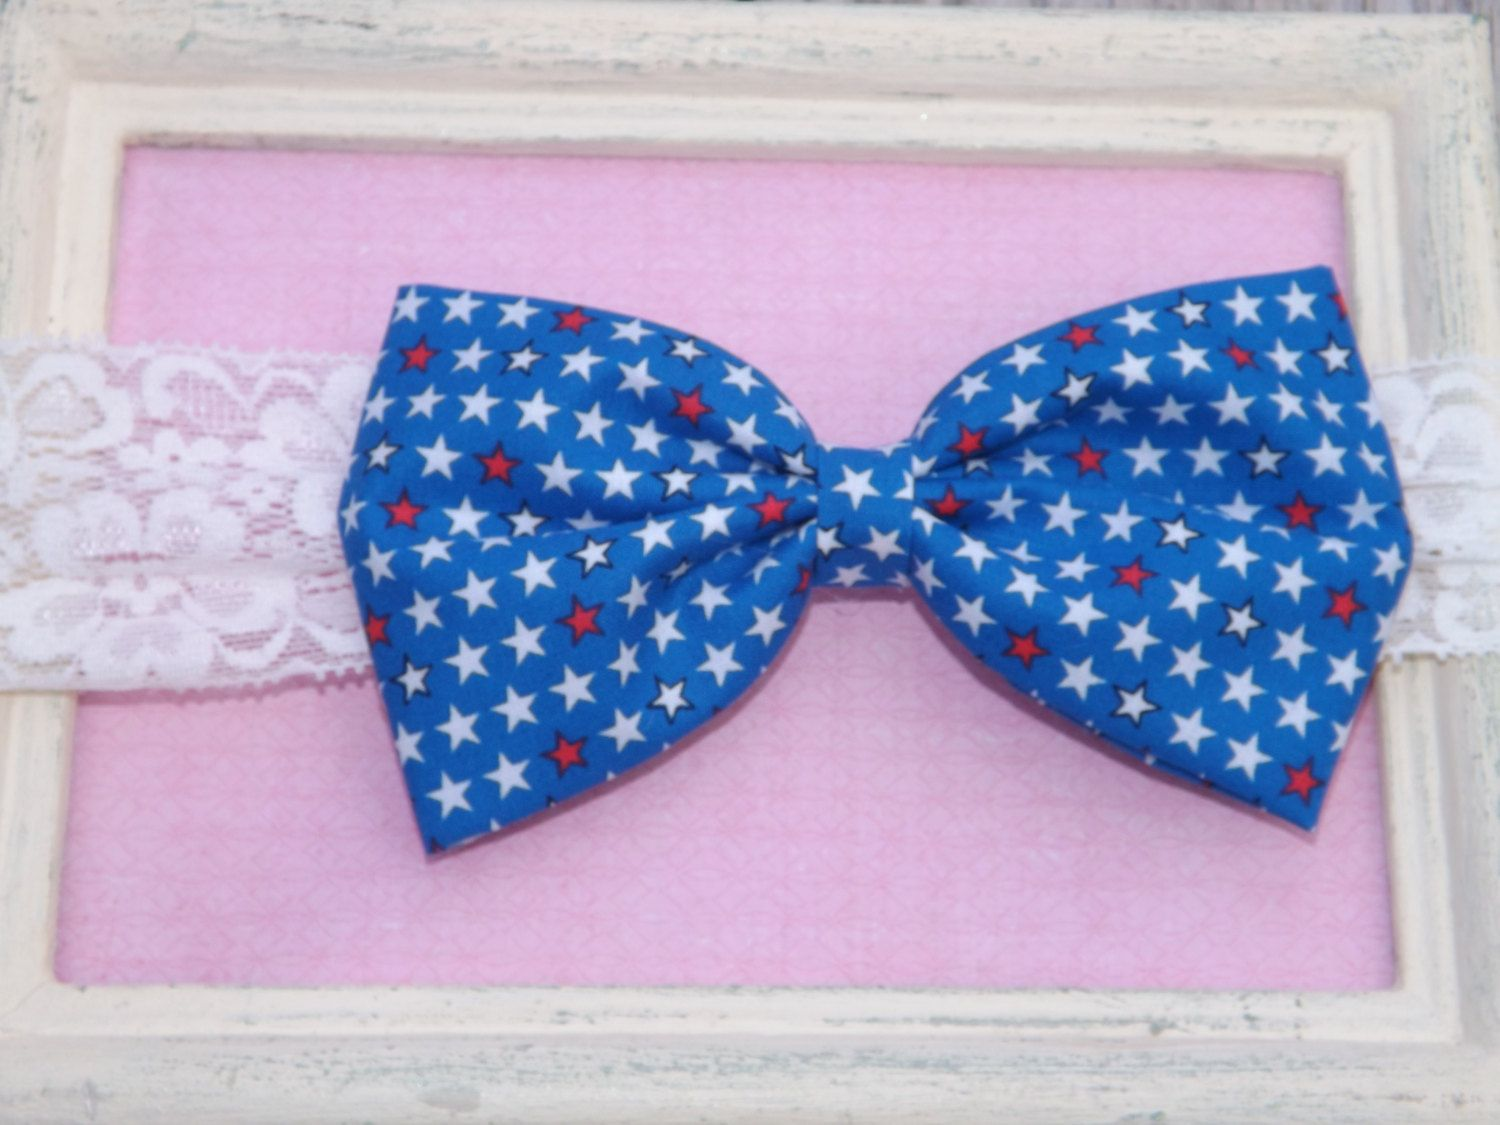 July 4th Fabric Bow Lace Headband.  Red, White, and Blue Independence Day Bow.  Fabric Bow Depot Patriotic Americana Collection. by TheFabricBowDepot on Etsy